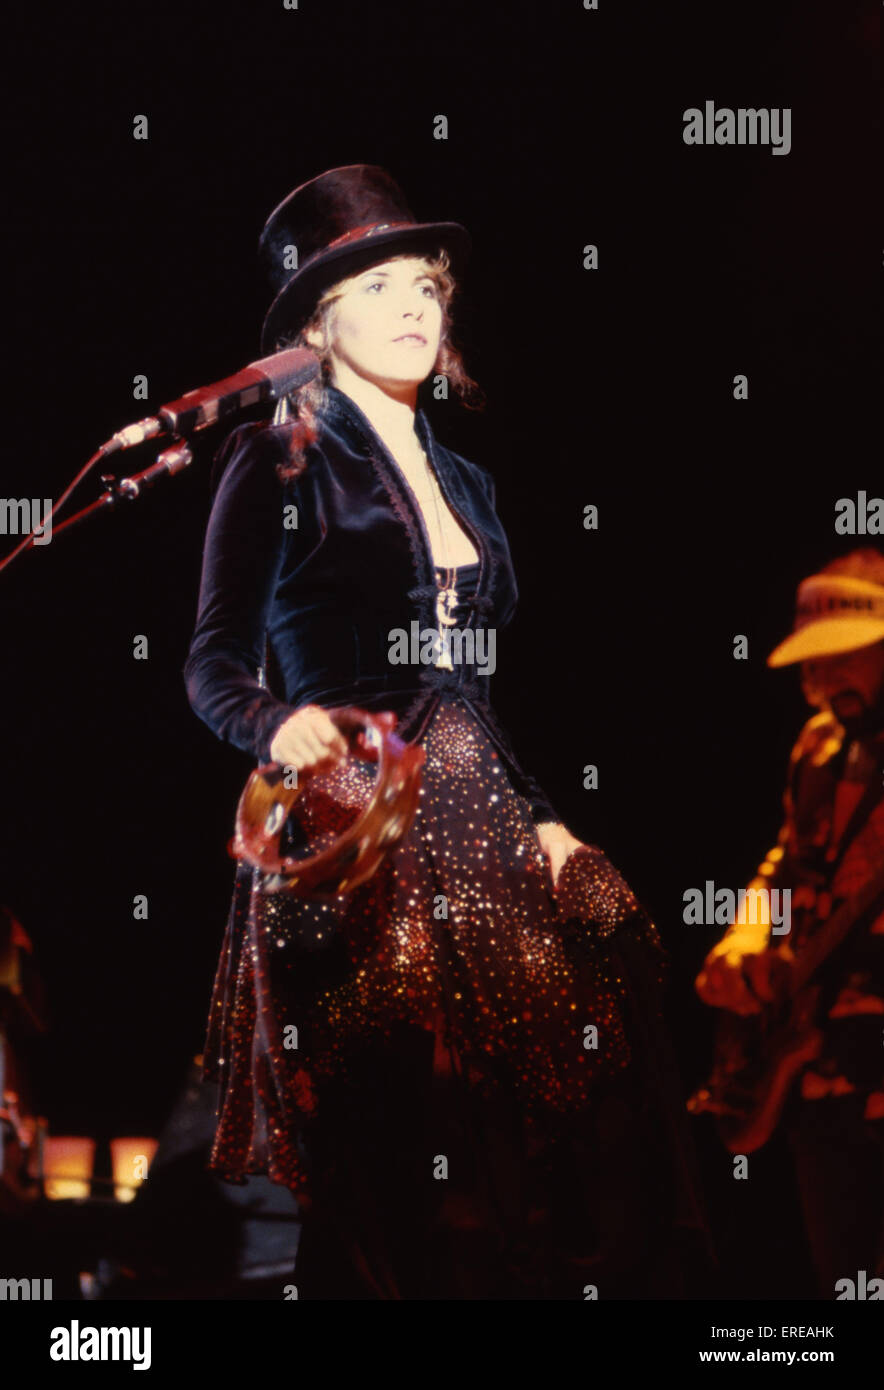 Stevie Nicks Performing In A Top Hat And With A Tambourine